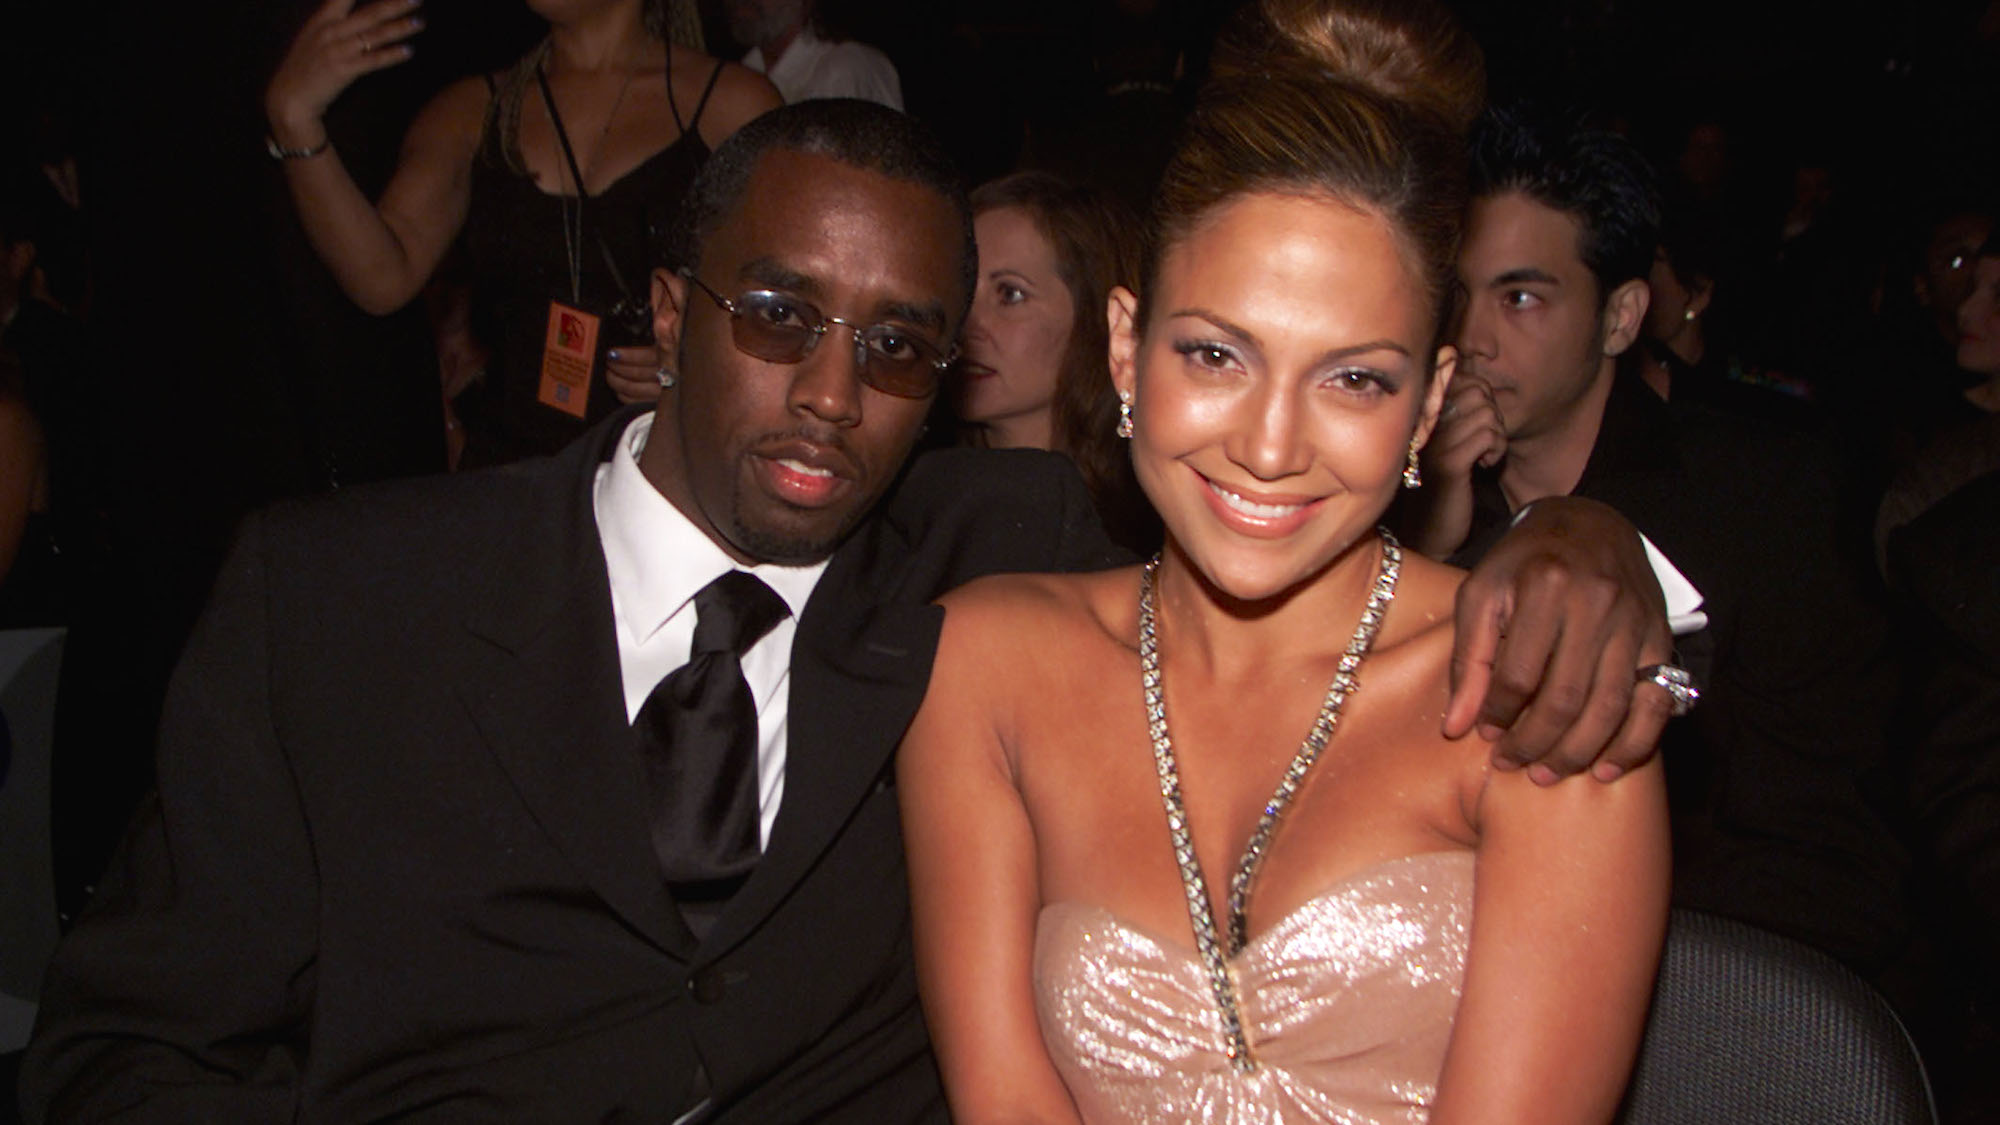 """diddy-gushes-over-his-ex-gf-j-lo-and-a-rod-hops-in-the-comments-section-as-well"""